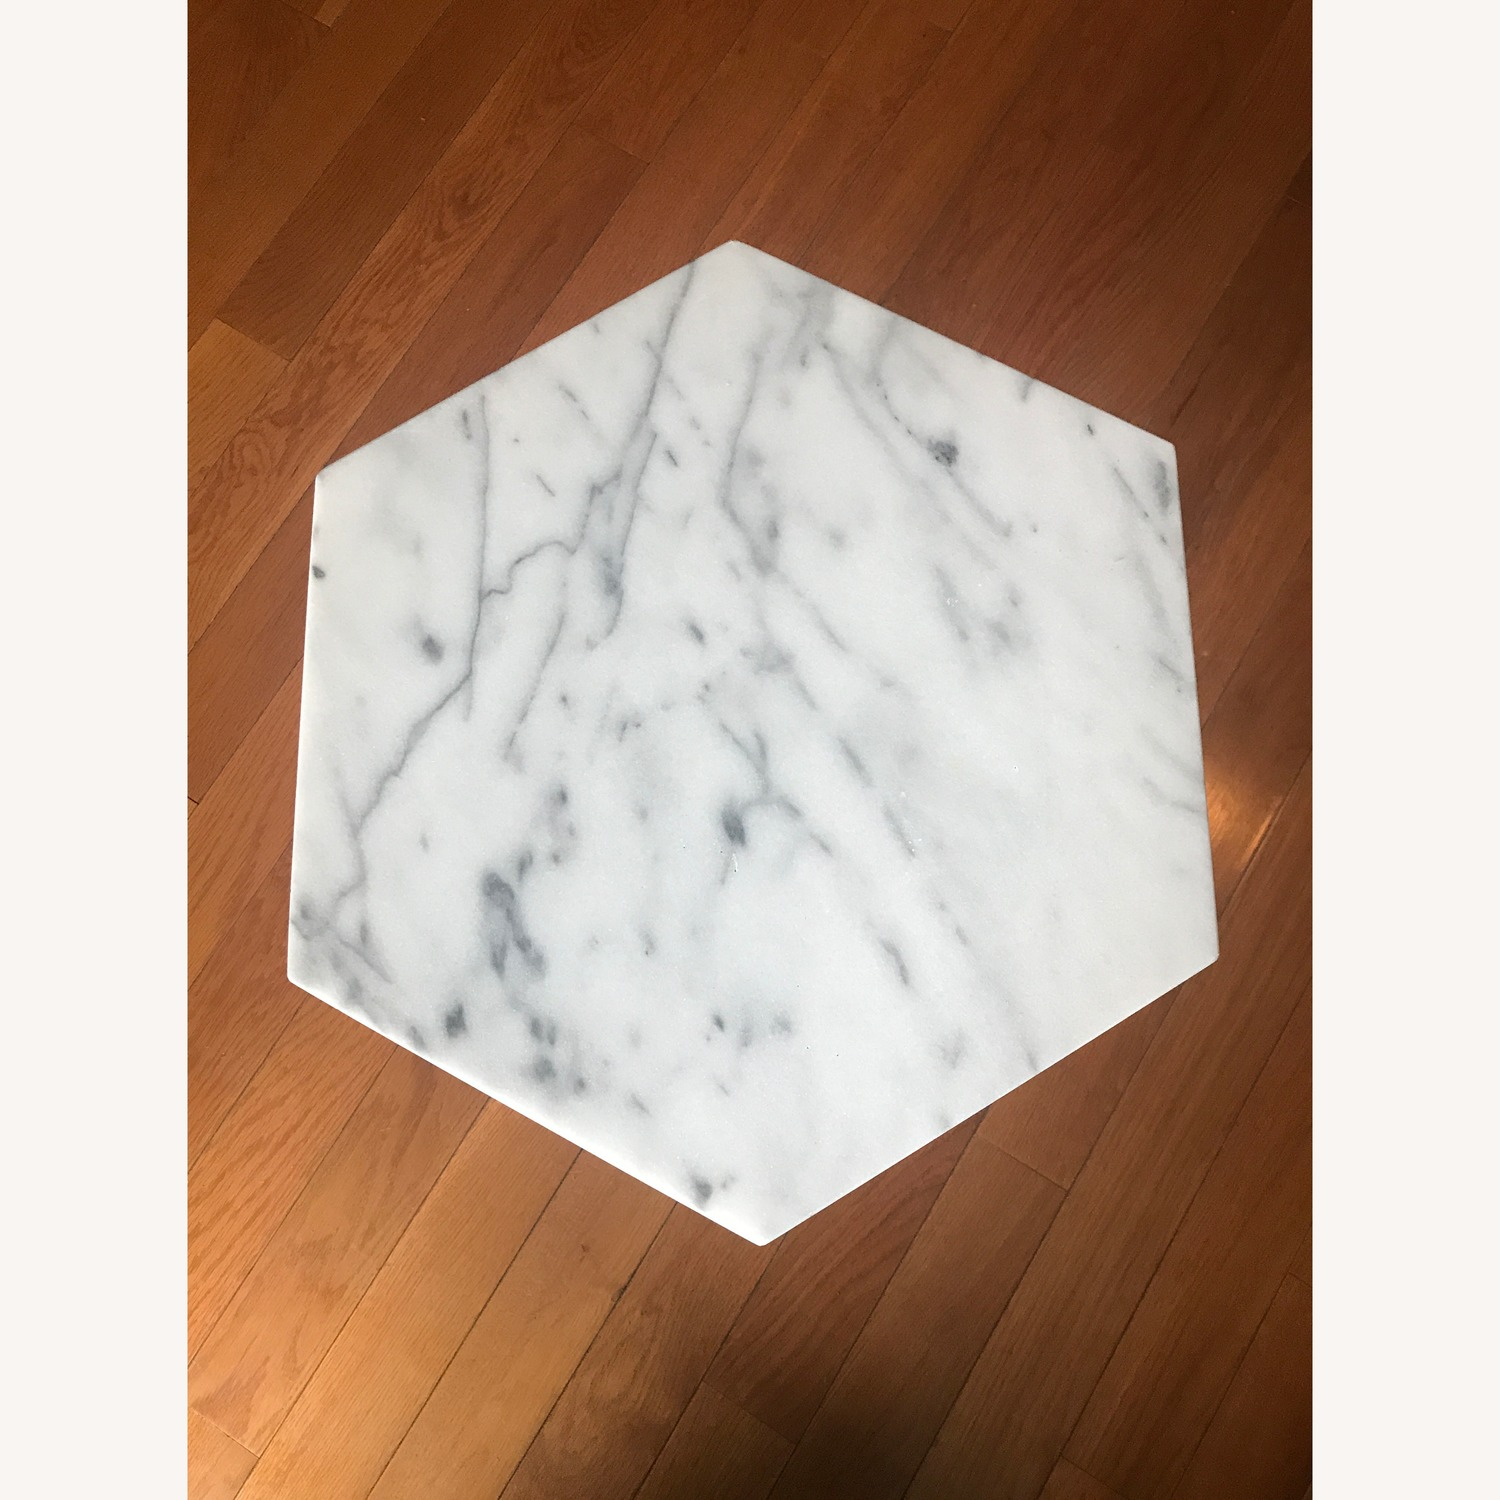 West Elm Marble Hex Side Tables - image-2